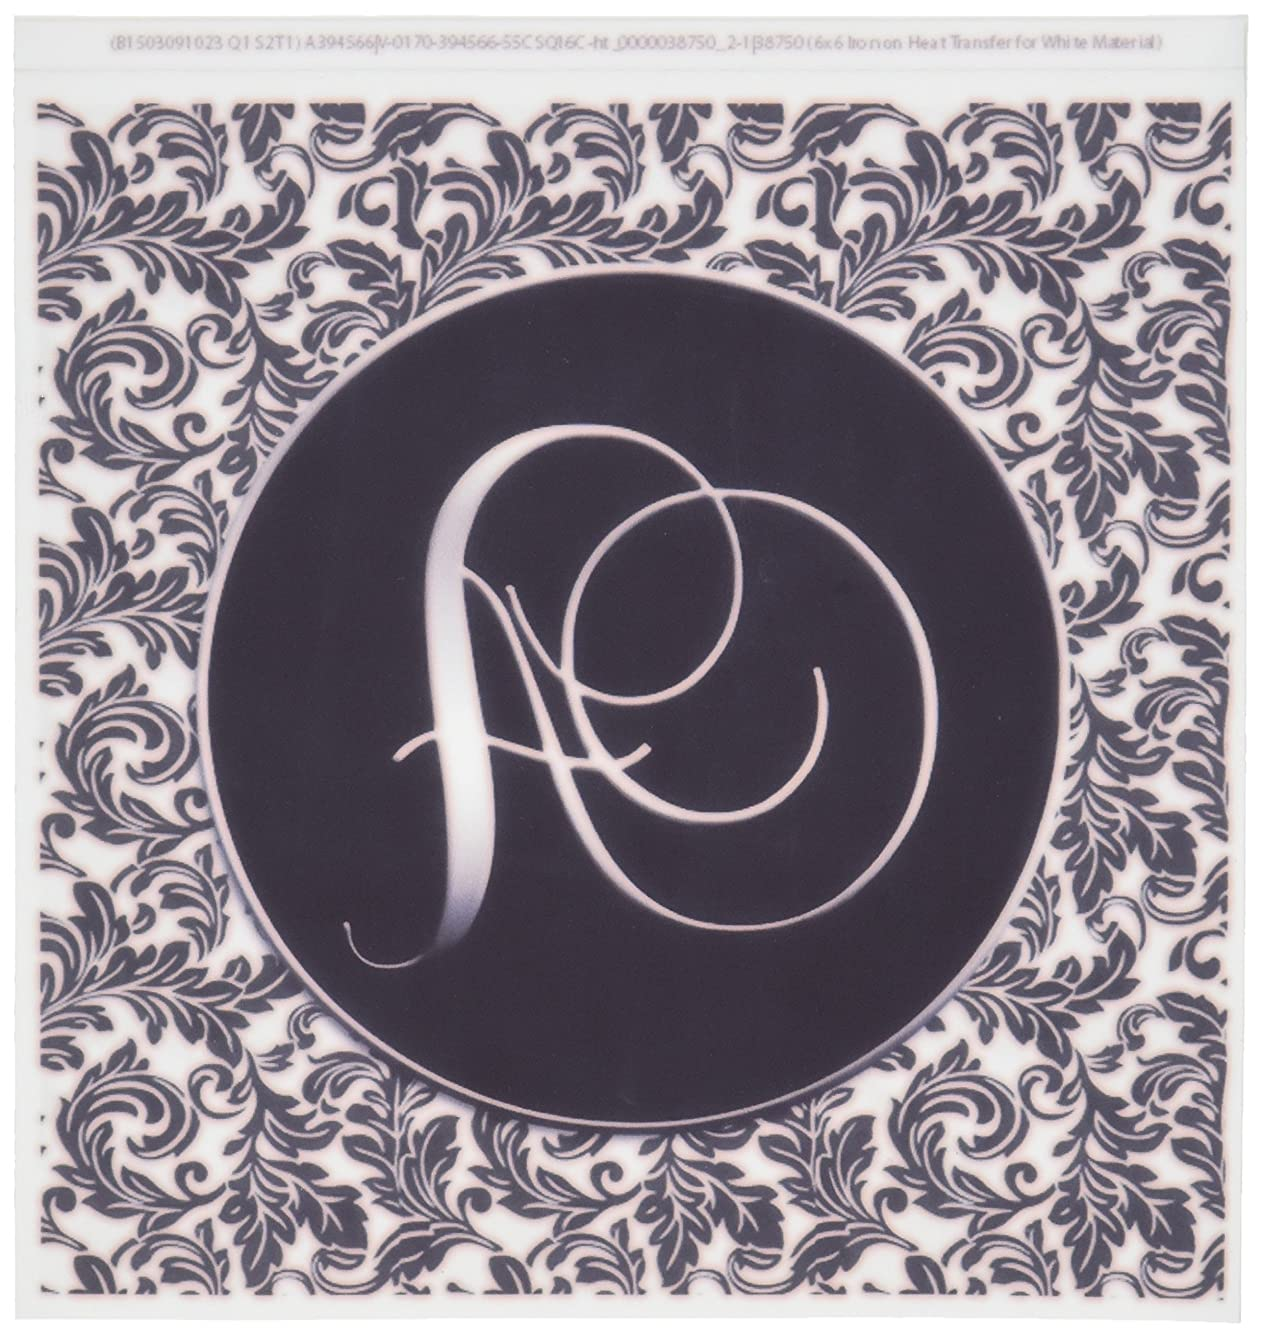 3dRose ht_38750_2 Letter a Black and White Damask Iron on Heat Transfer for White Material, 6 by 6-Inch